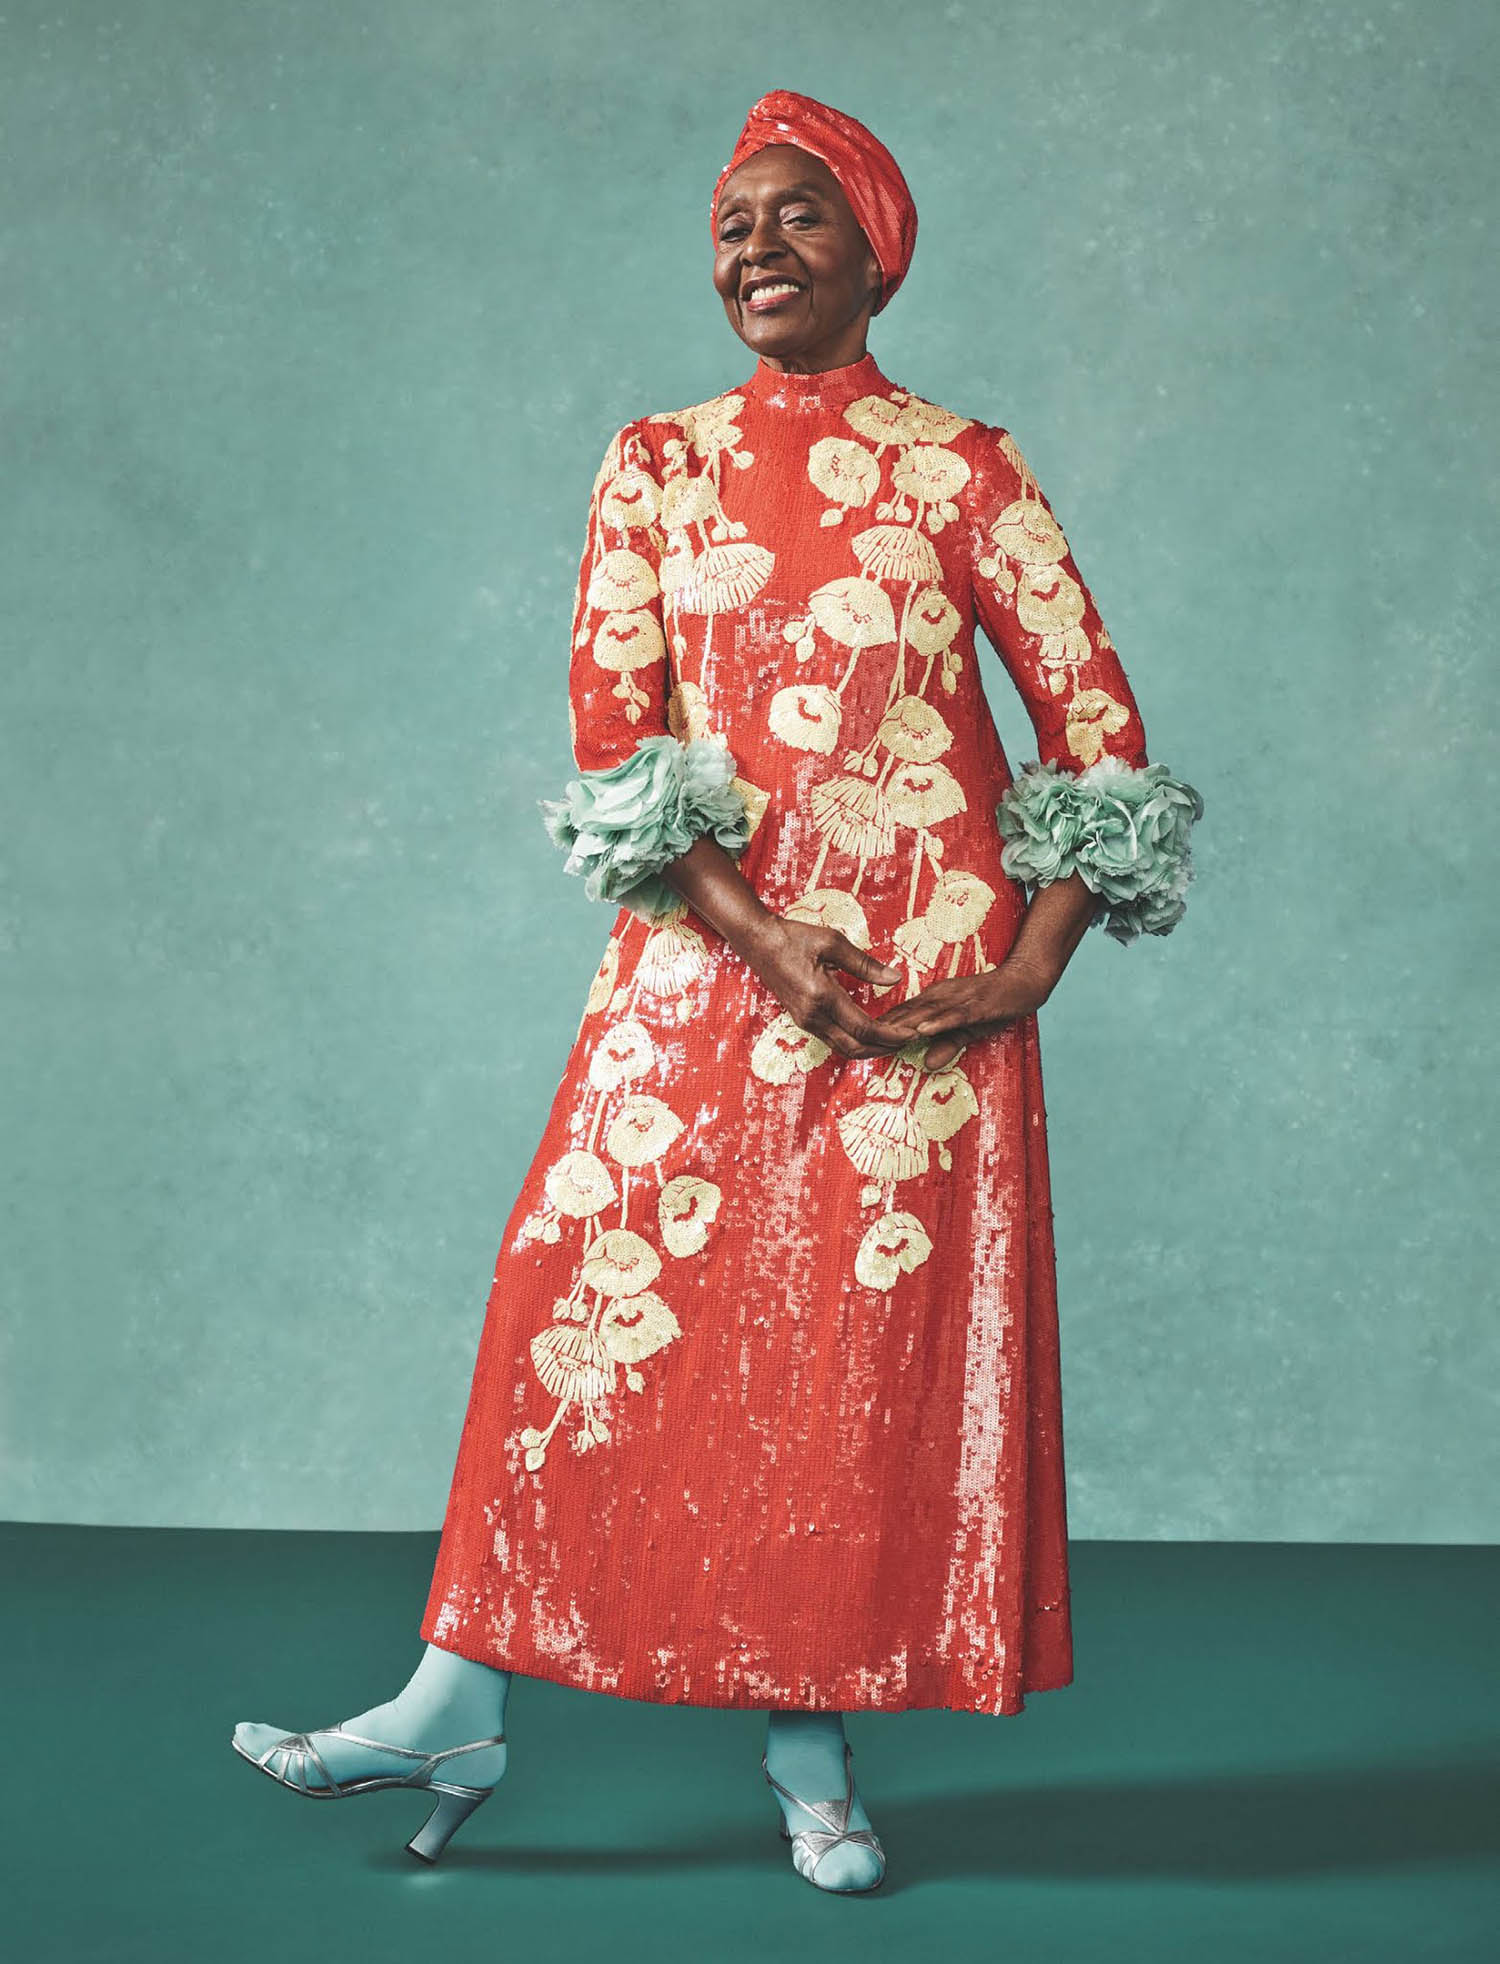 Bethann Hardison by Sharif Hamza for British Vogue May 2021